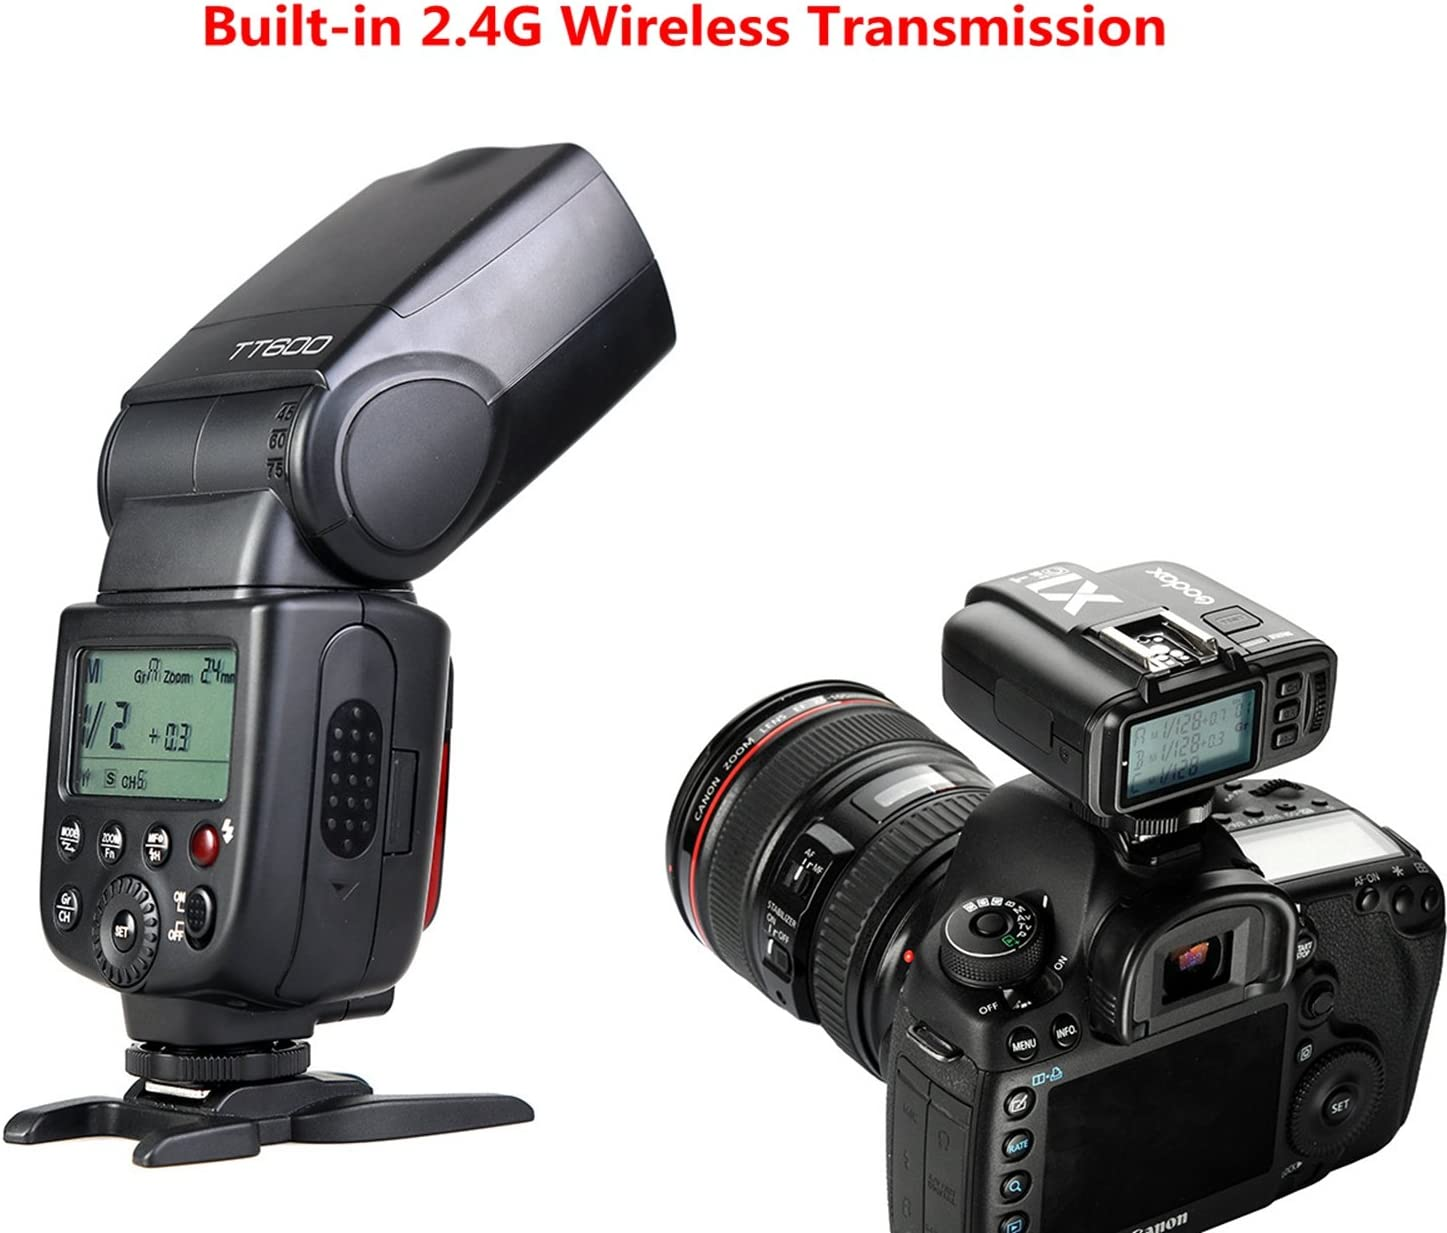 Godox TT600 Flash Speedlite with Built-in 2.4G Wireless Transmission for Canon Pentax Olympus and and Other Digital Cameras Nikon